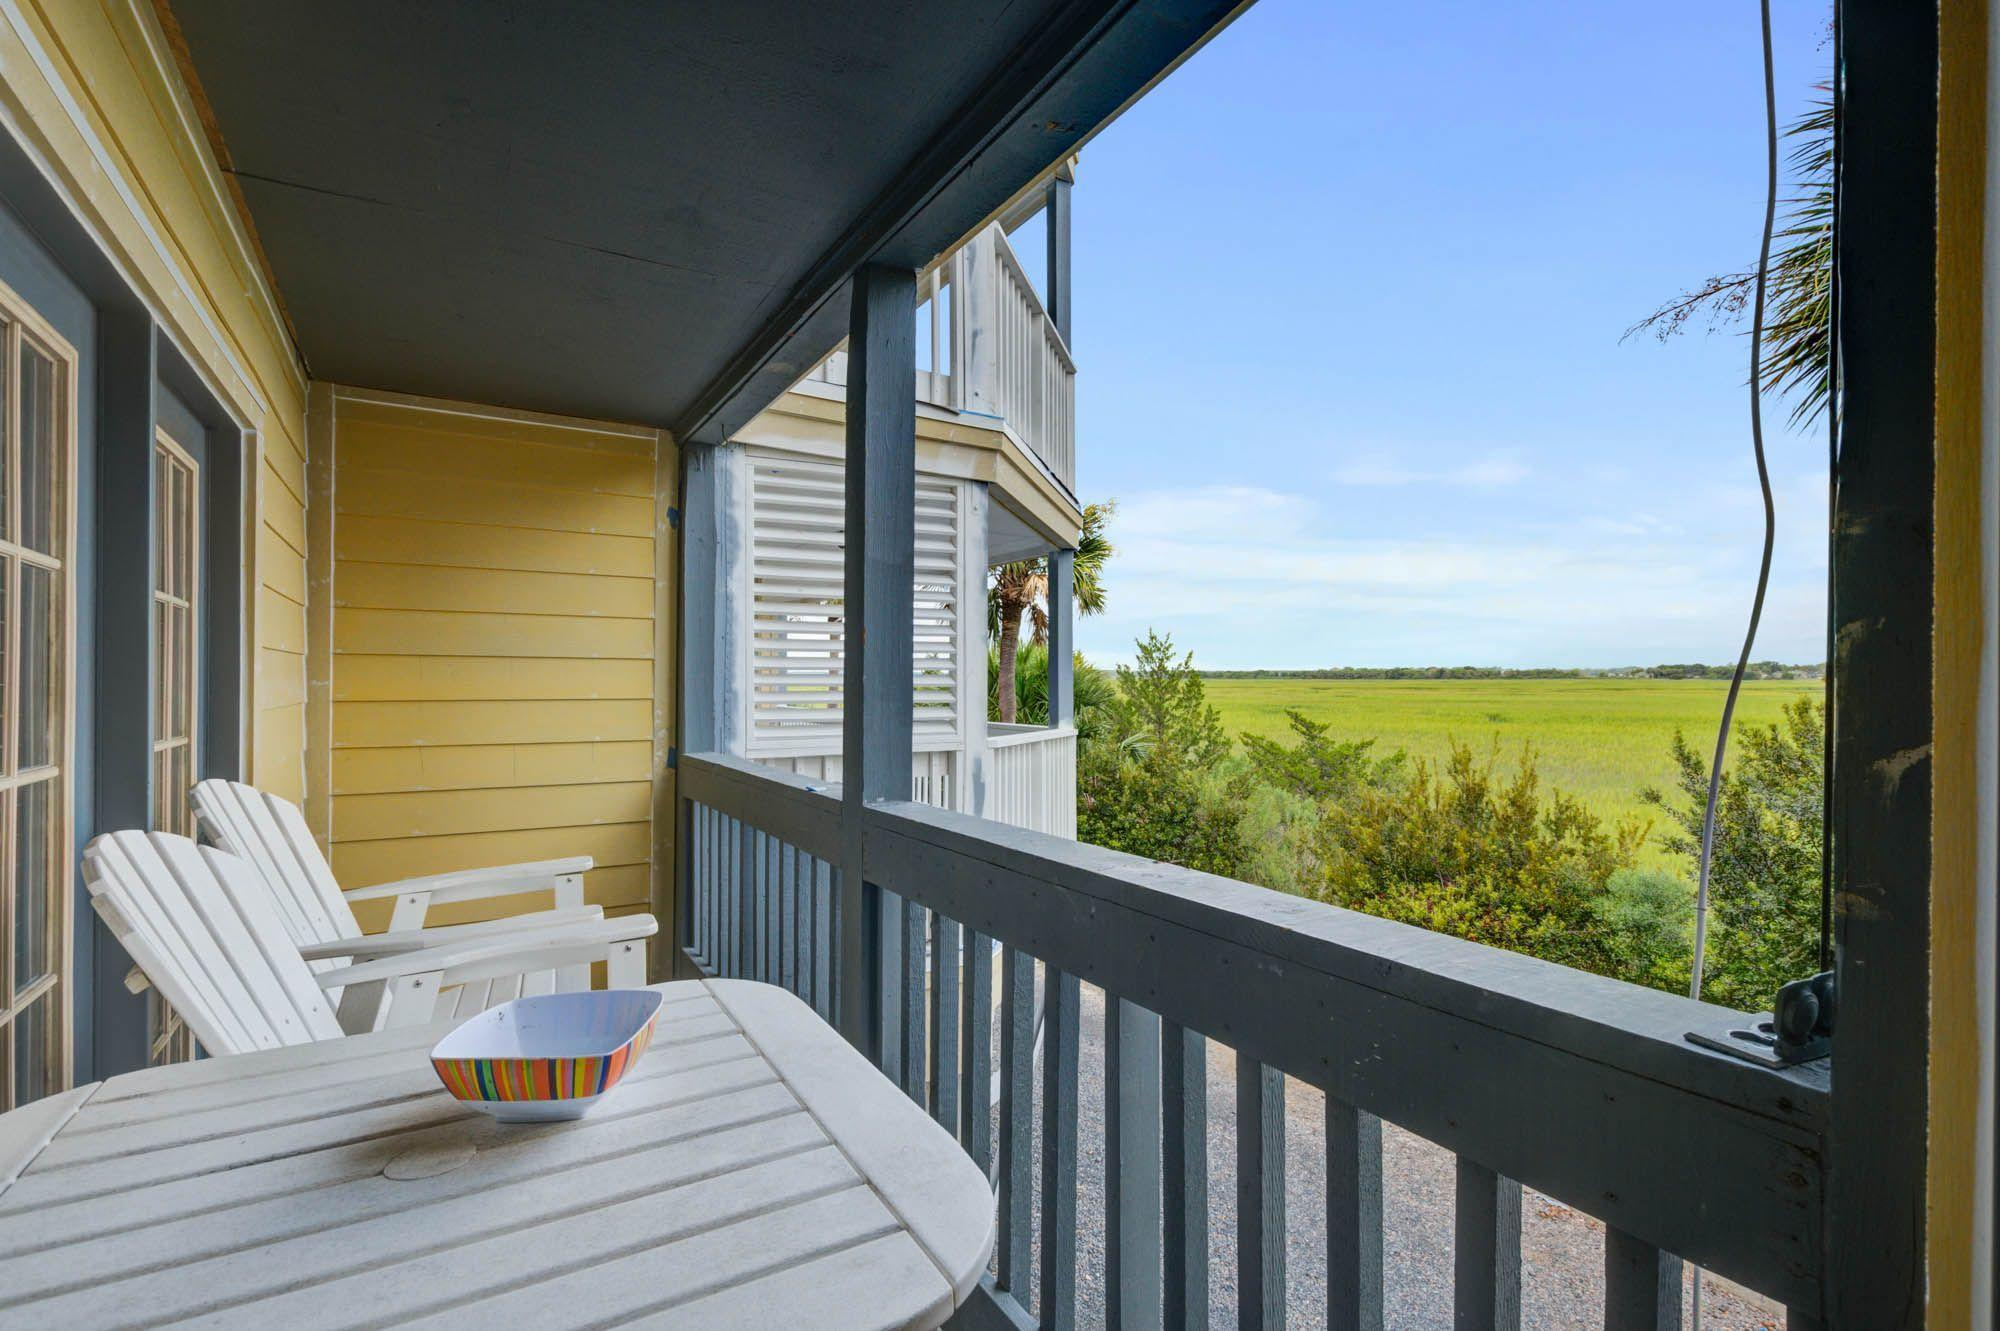 Marshview Villas Homes For Sale - 151 Marsh View Villas, Folly Beach, SC - 2